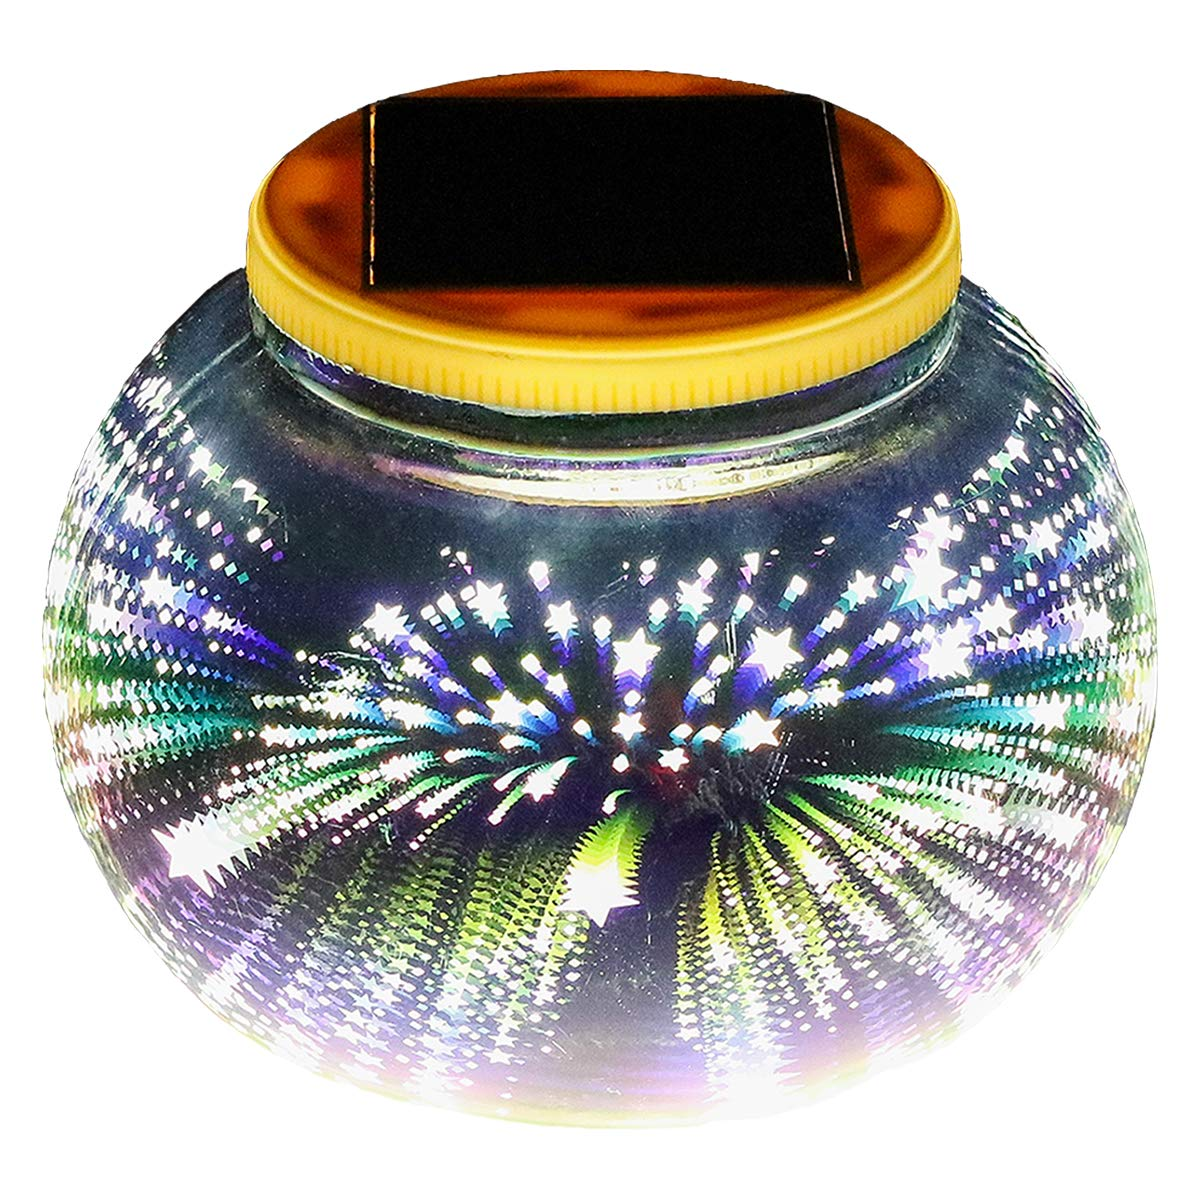 Mosaic Solar Light,Color Changing/Weatherproof Crystal Glass Globe Ball Light for for Patio, Garden, Yard,Party, Outdoor/Indoor Decoration